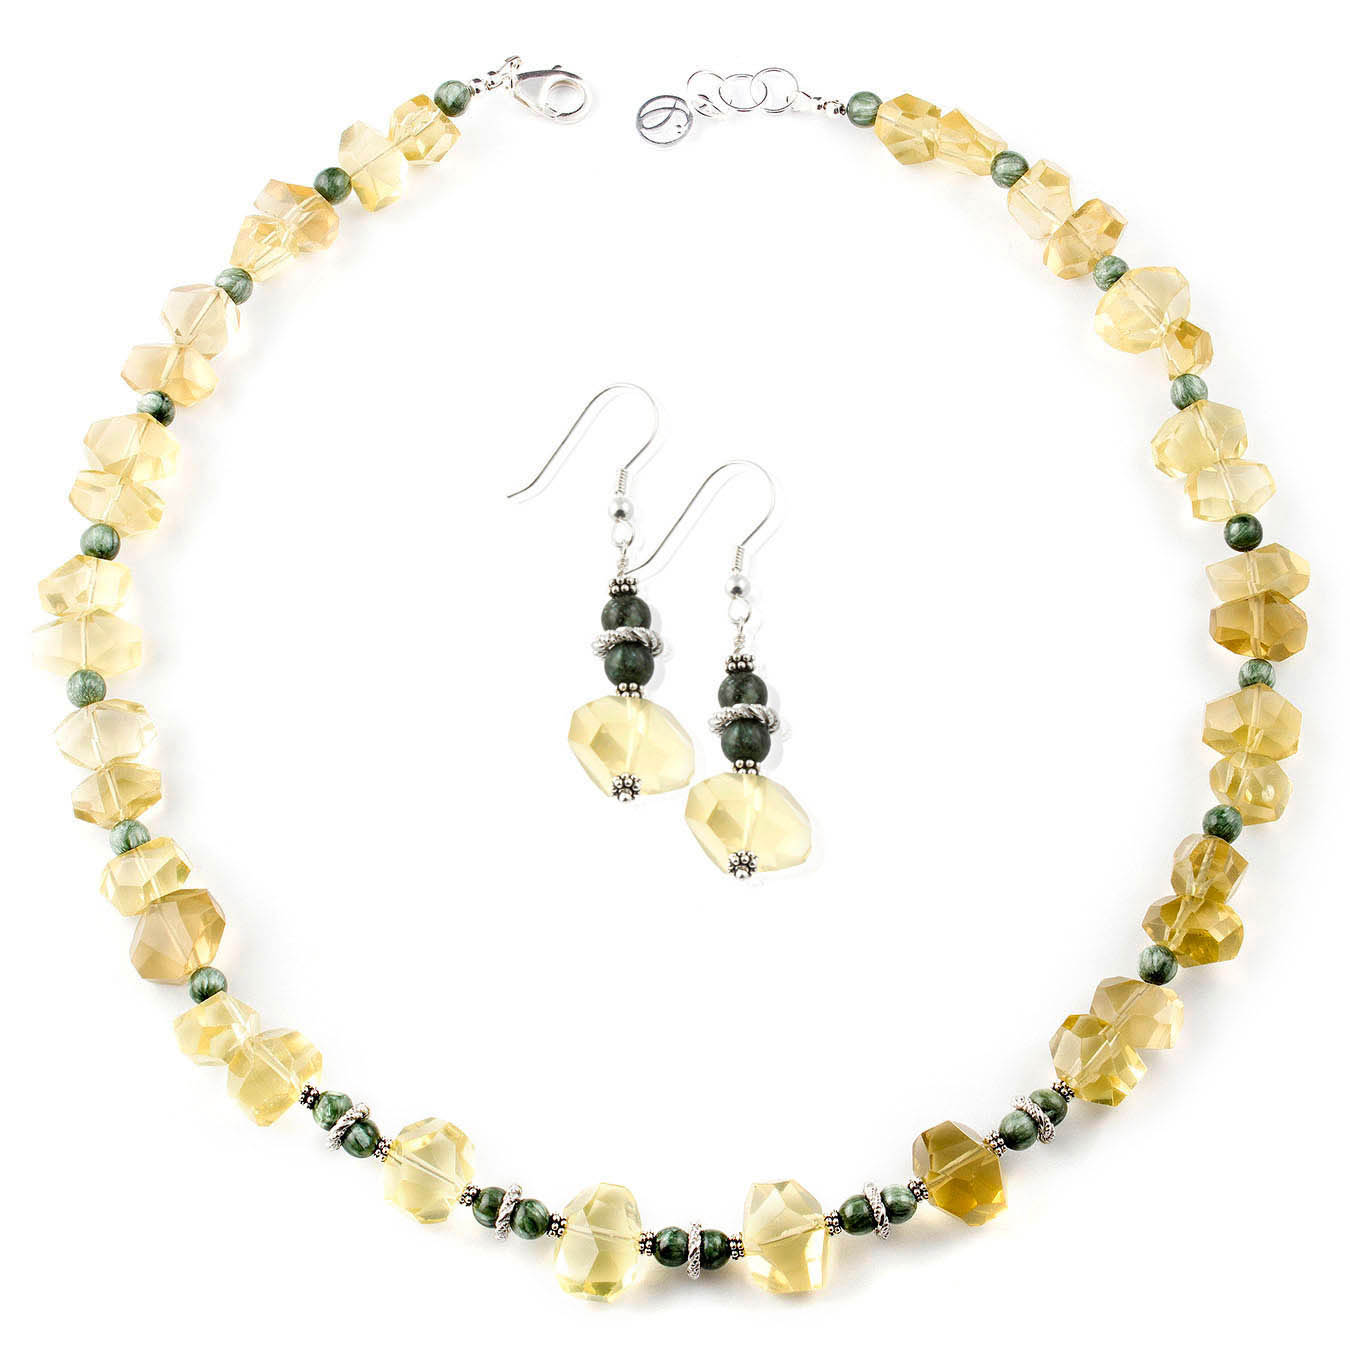 Handmade statement jewelry made with lemon quartz and seraphinite